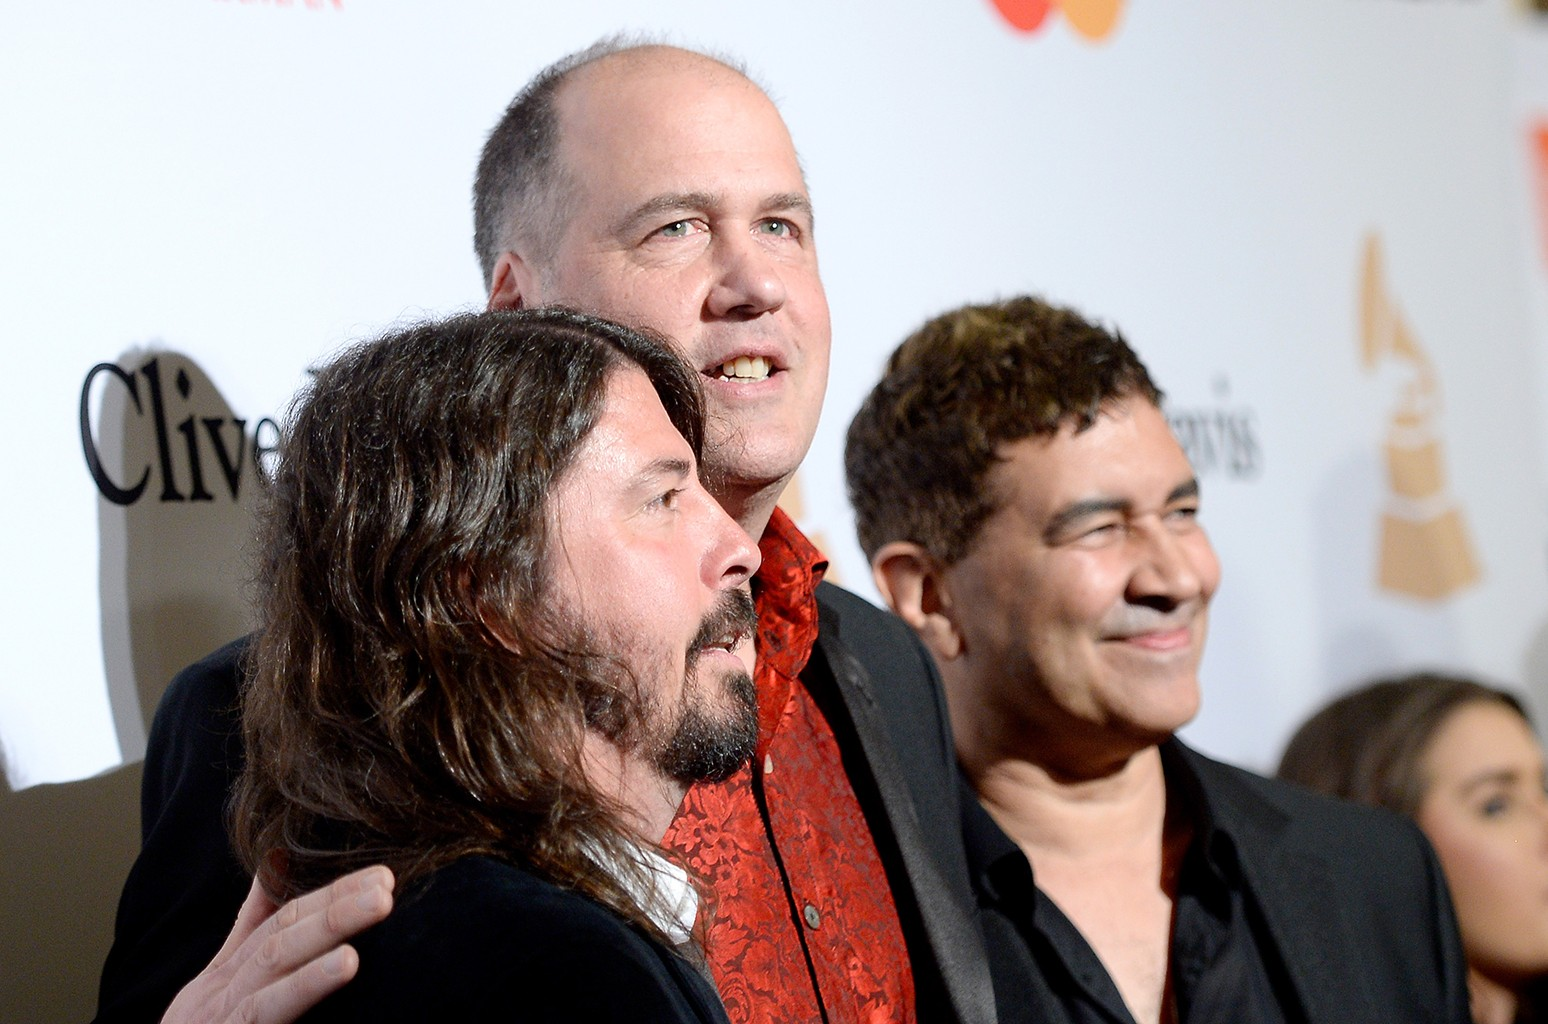 Dave Grohl, Krist Novoselic, and Pat Smear